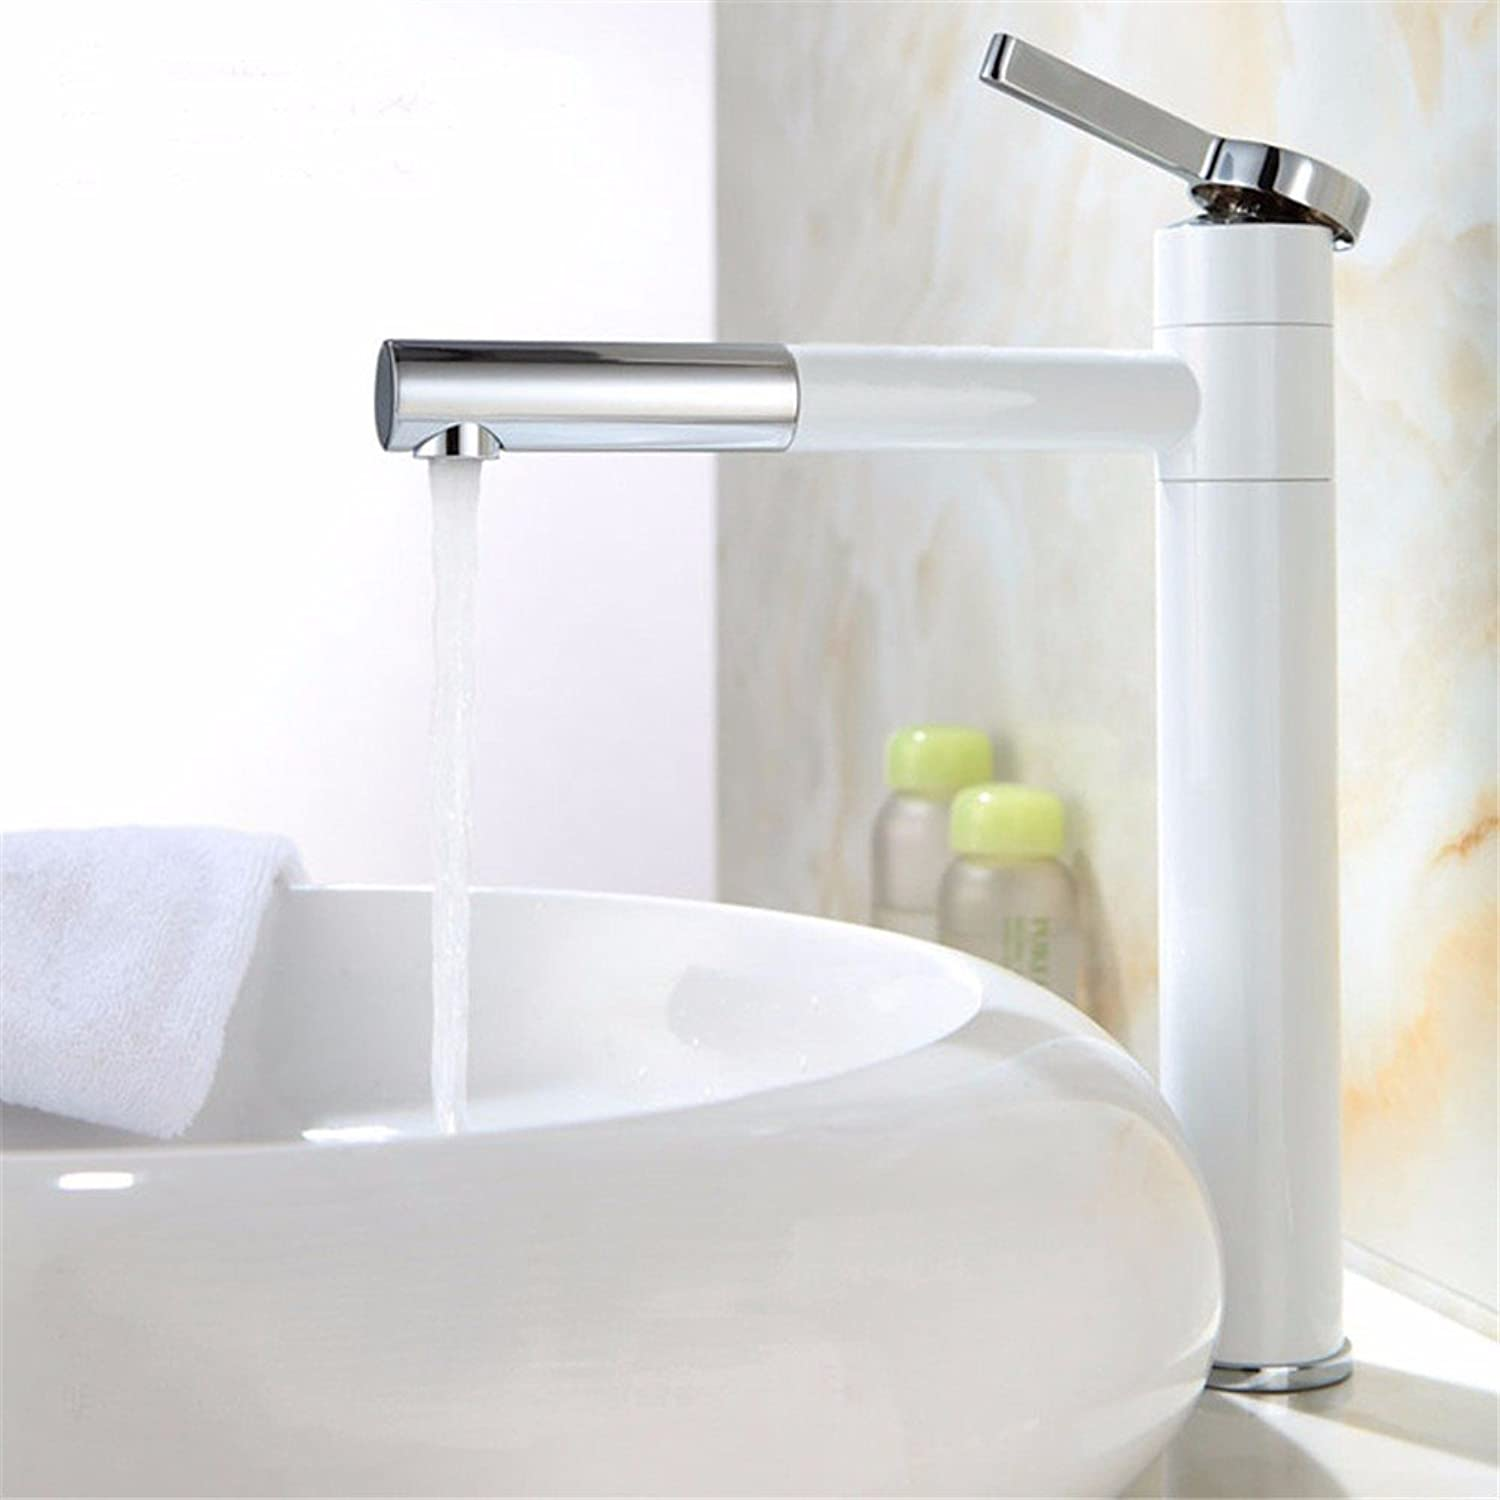 IJIAHOMIE Style of Bathroom Sink Taps, Bathroom Faucets,Waterfall Basin Sink Mixer Tap Modern White Ceramic 360 Degree redating hot and Cold Water Ceramic Valve, Highsection